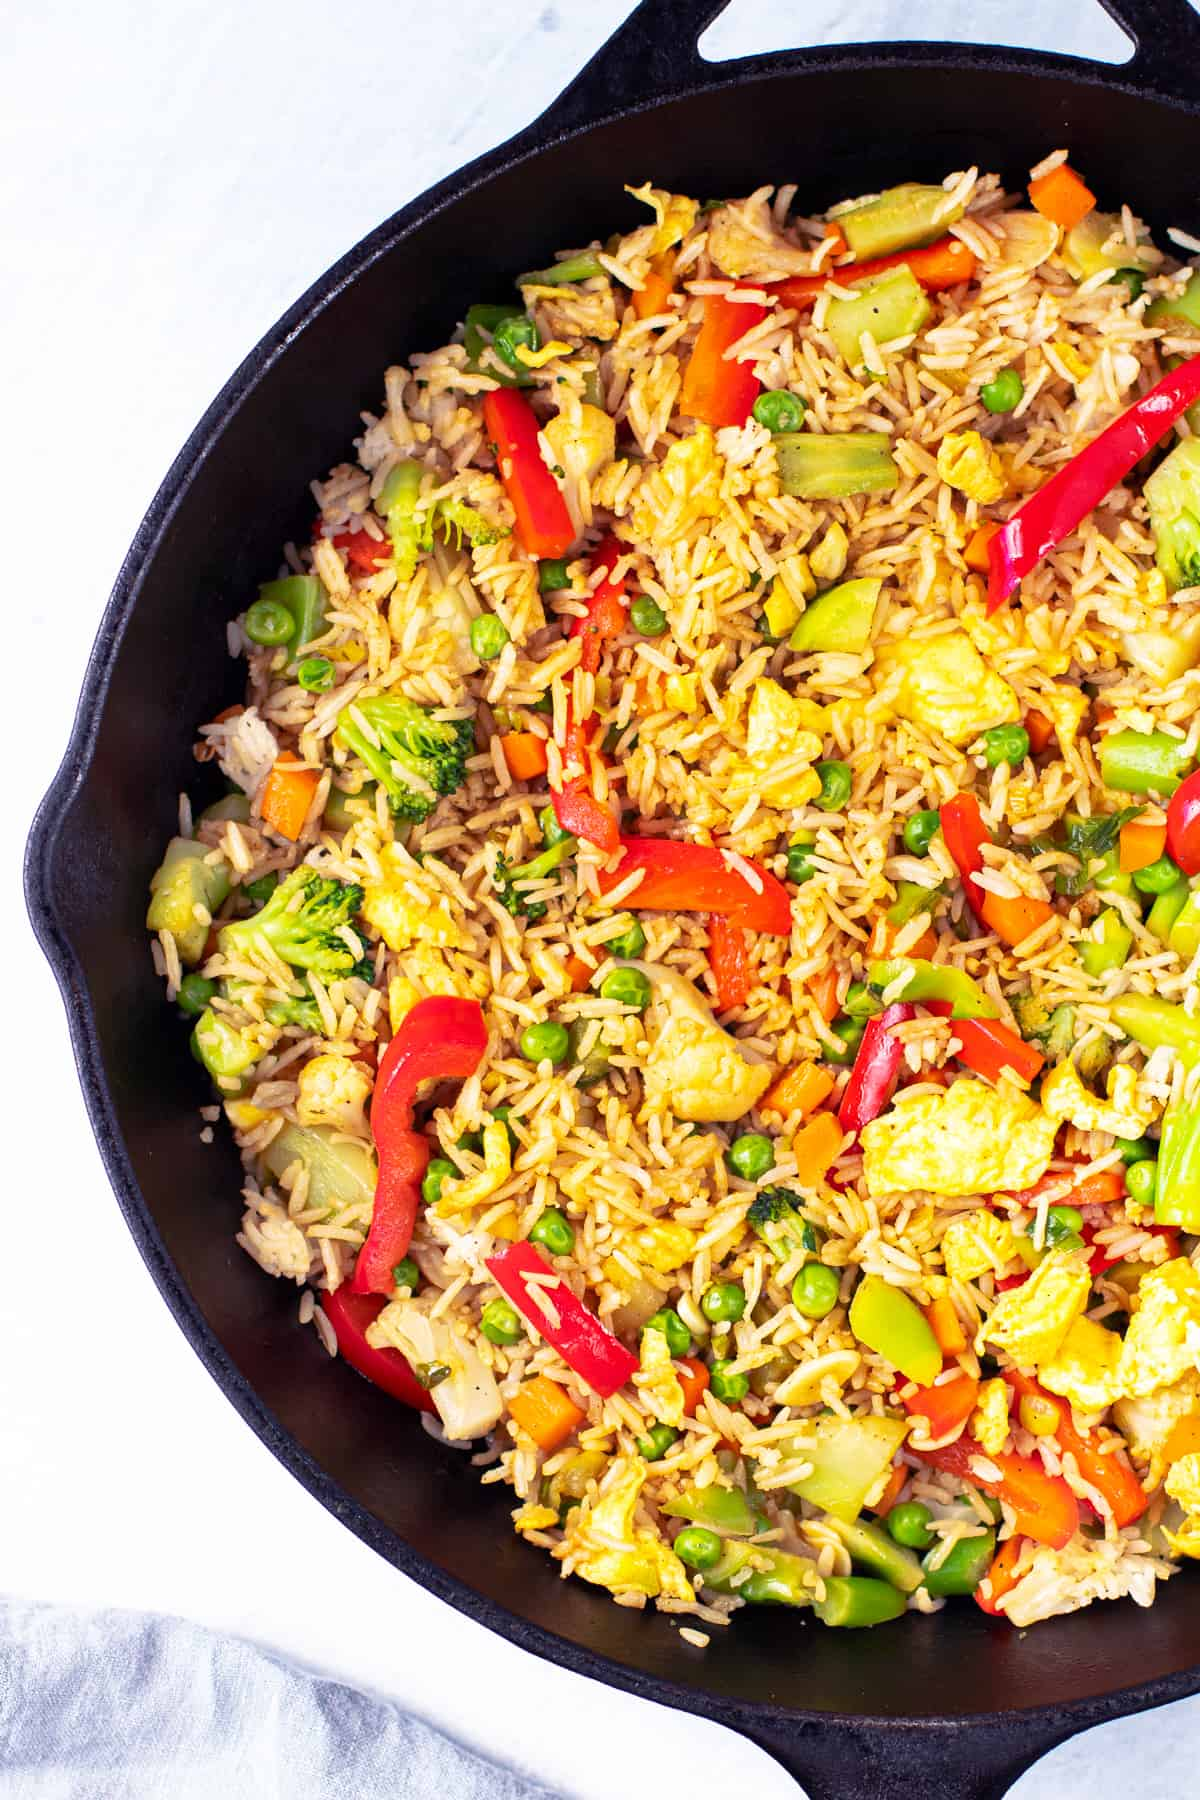 A skillet with veggie fried rice.